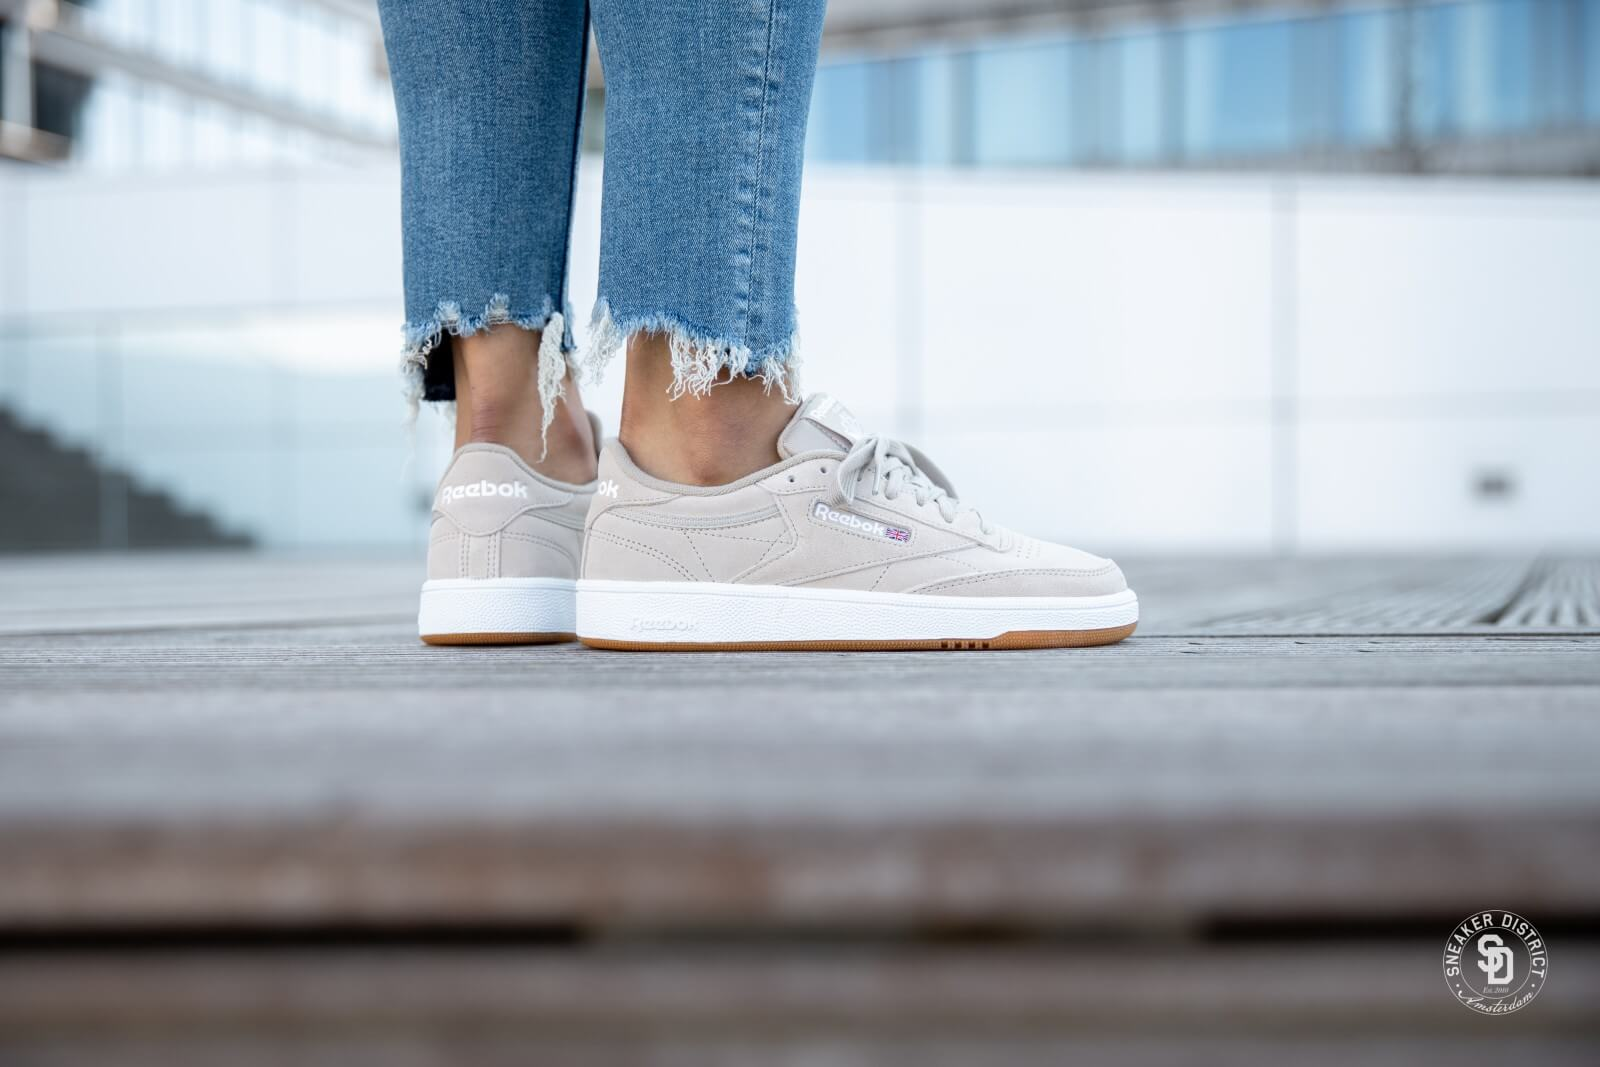 Reebok Classic Club C 85 Sneakers In White And Gum